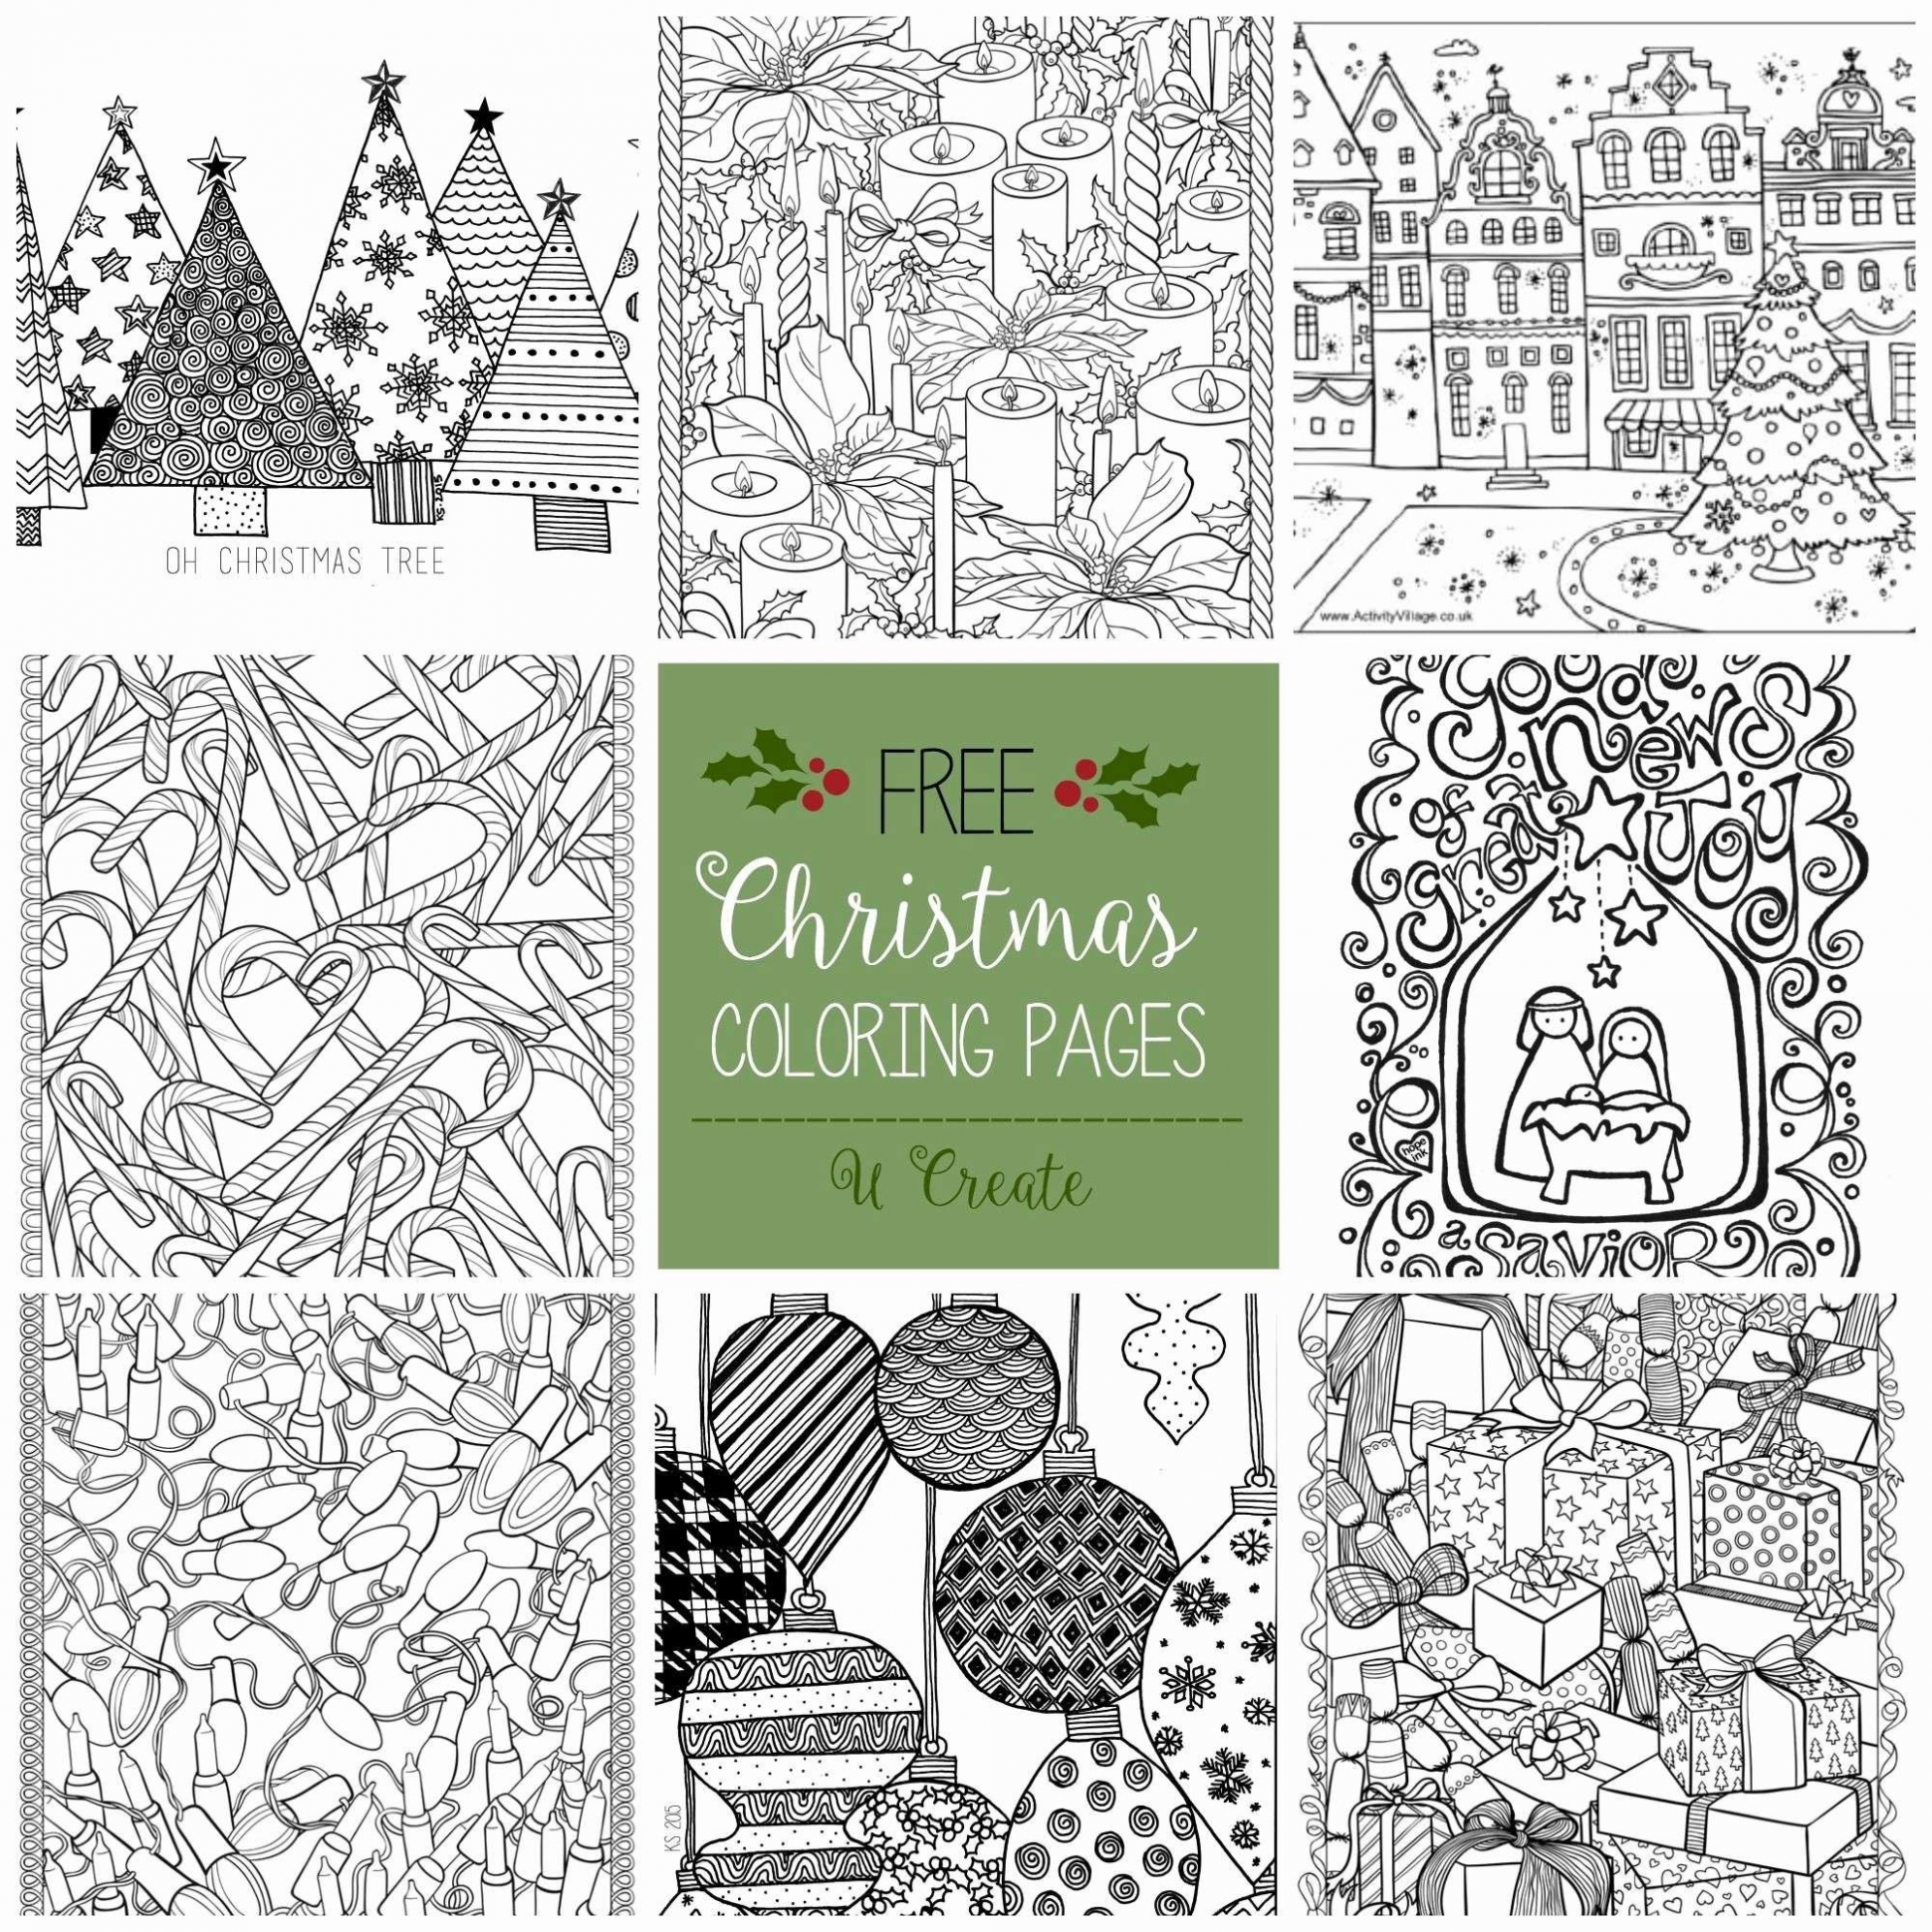 Christmas Wish List Coloring Page Elegant 19 Christmas Puppy ..